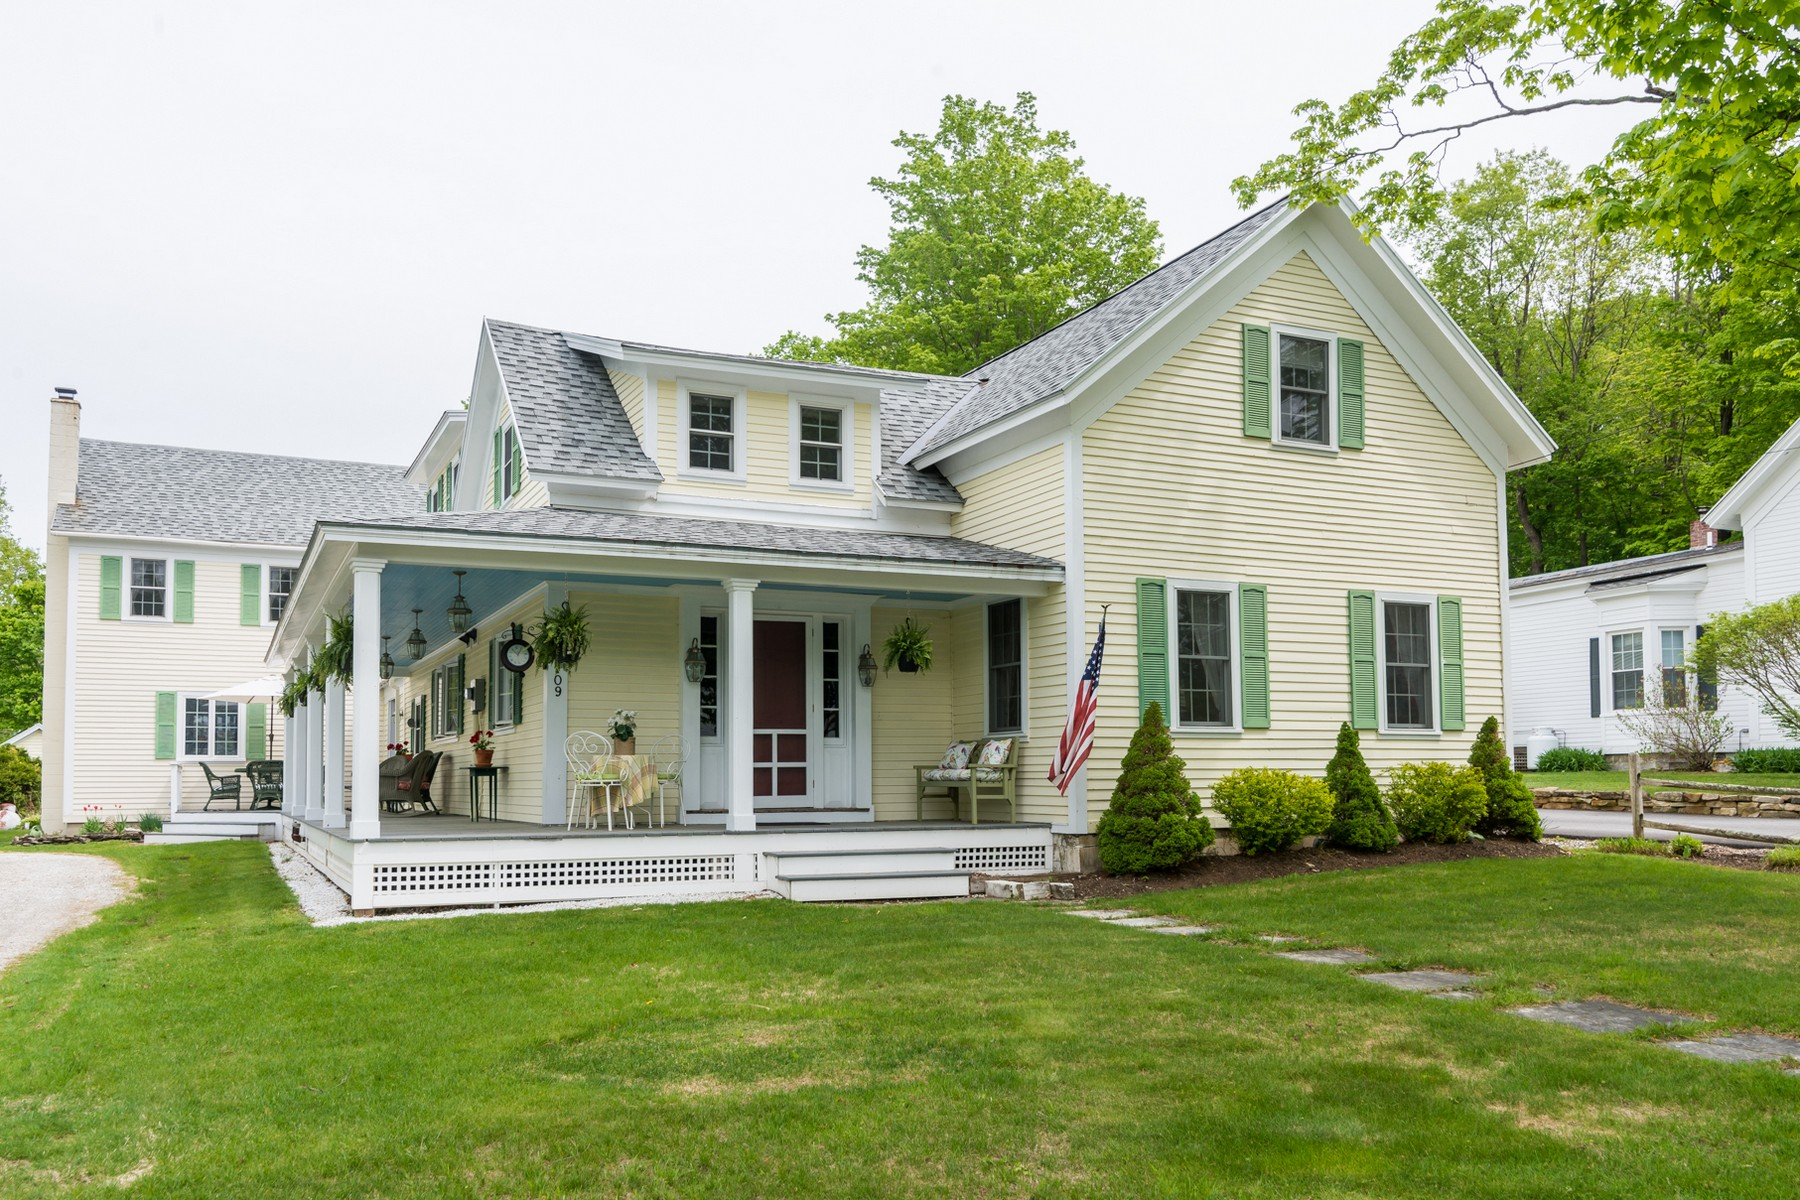 109 Mad Tom Rd, East Dorset, VT 05253